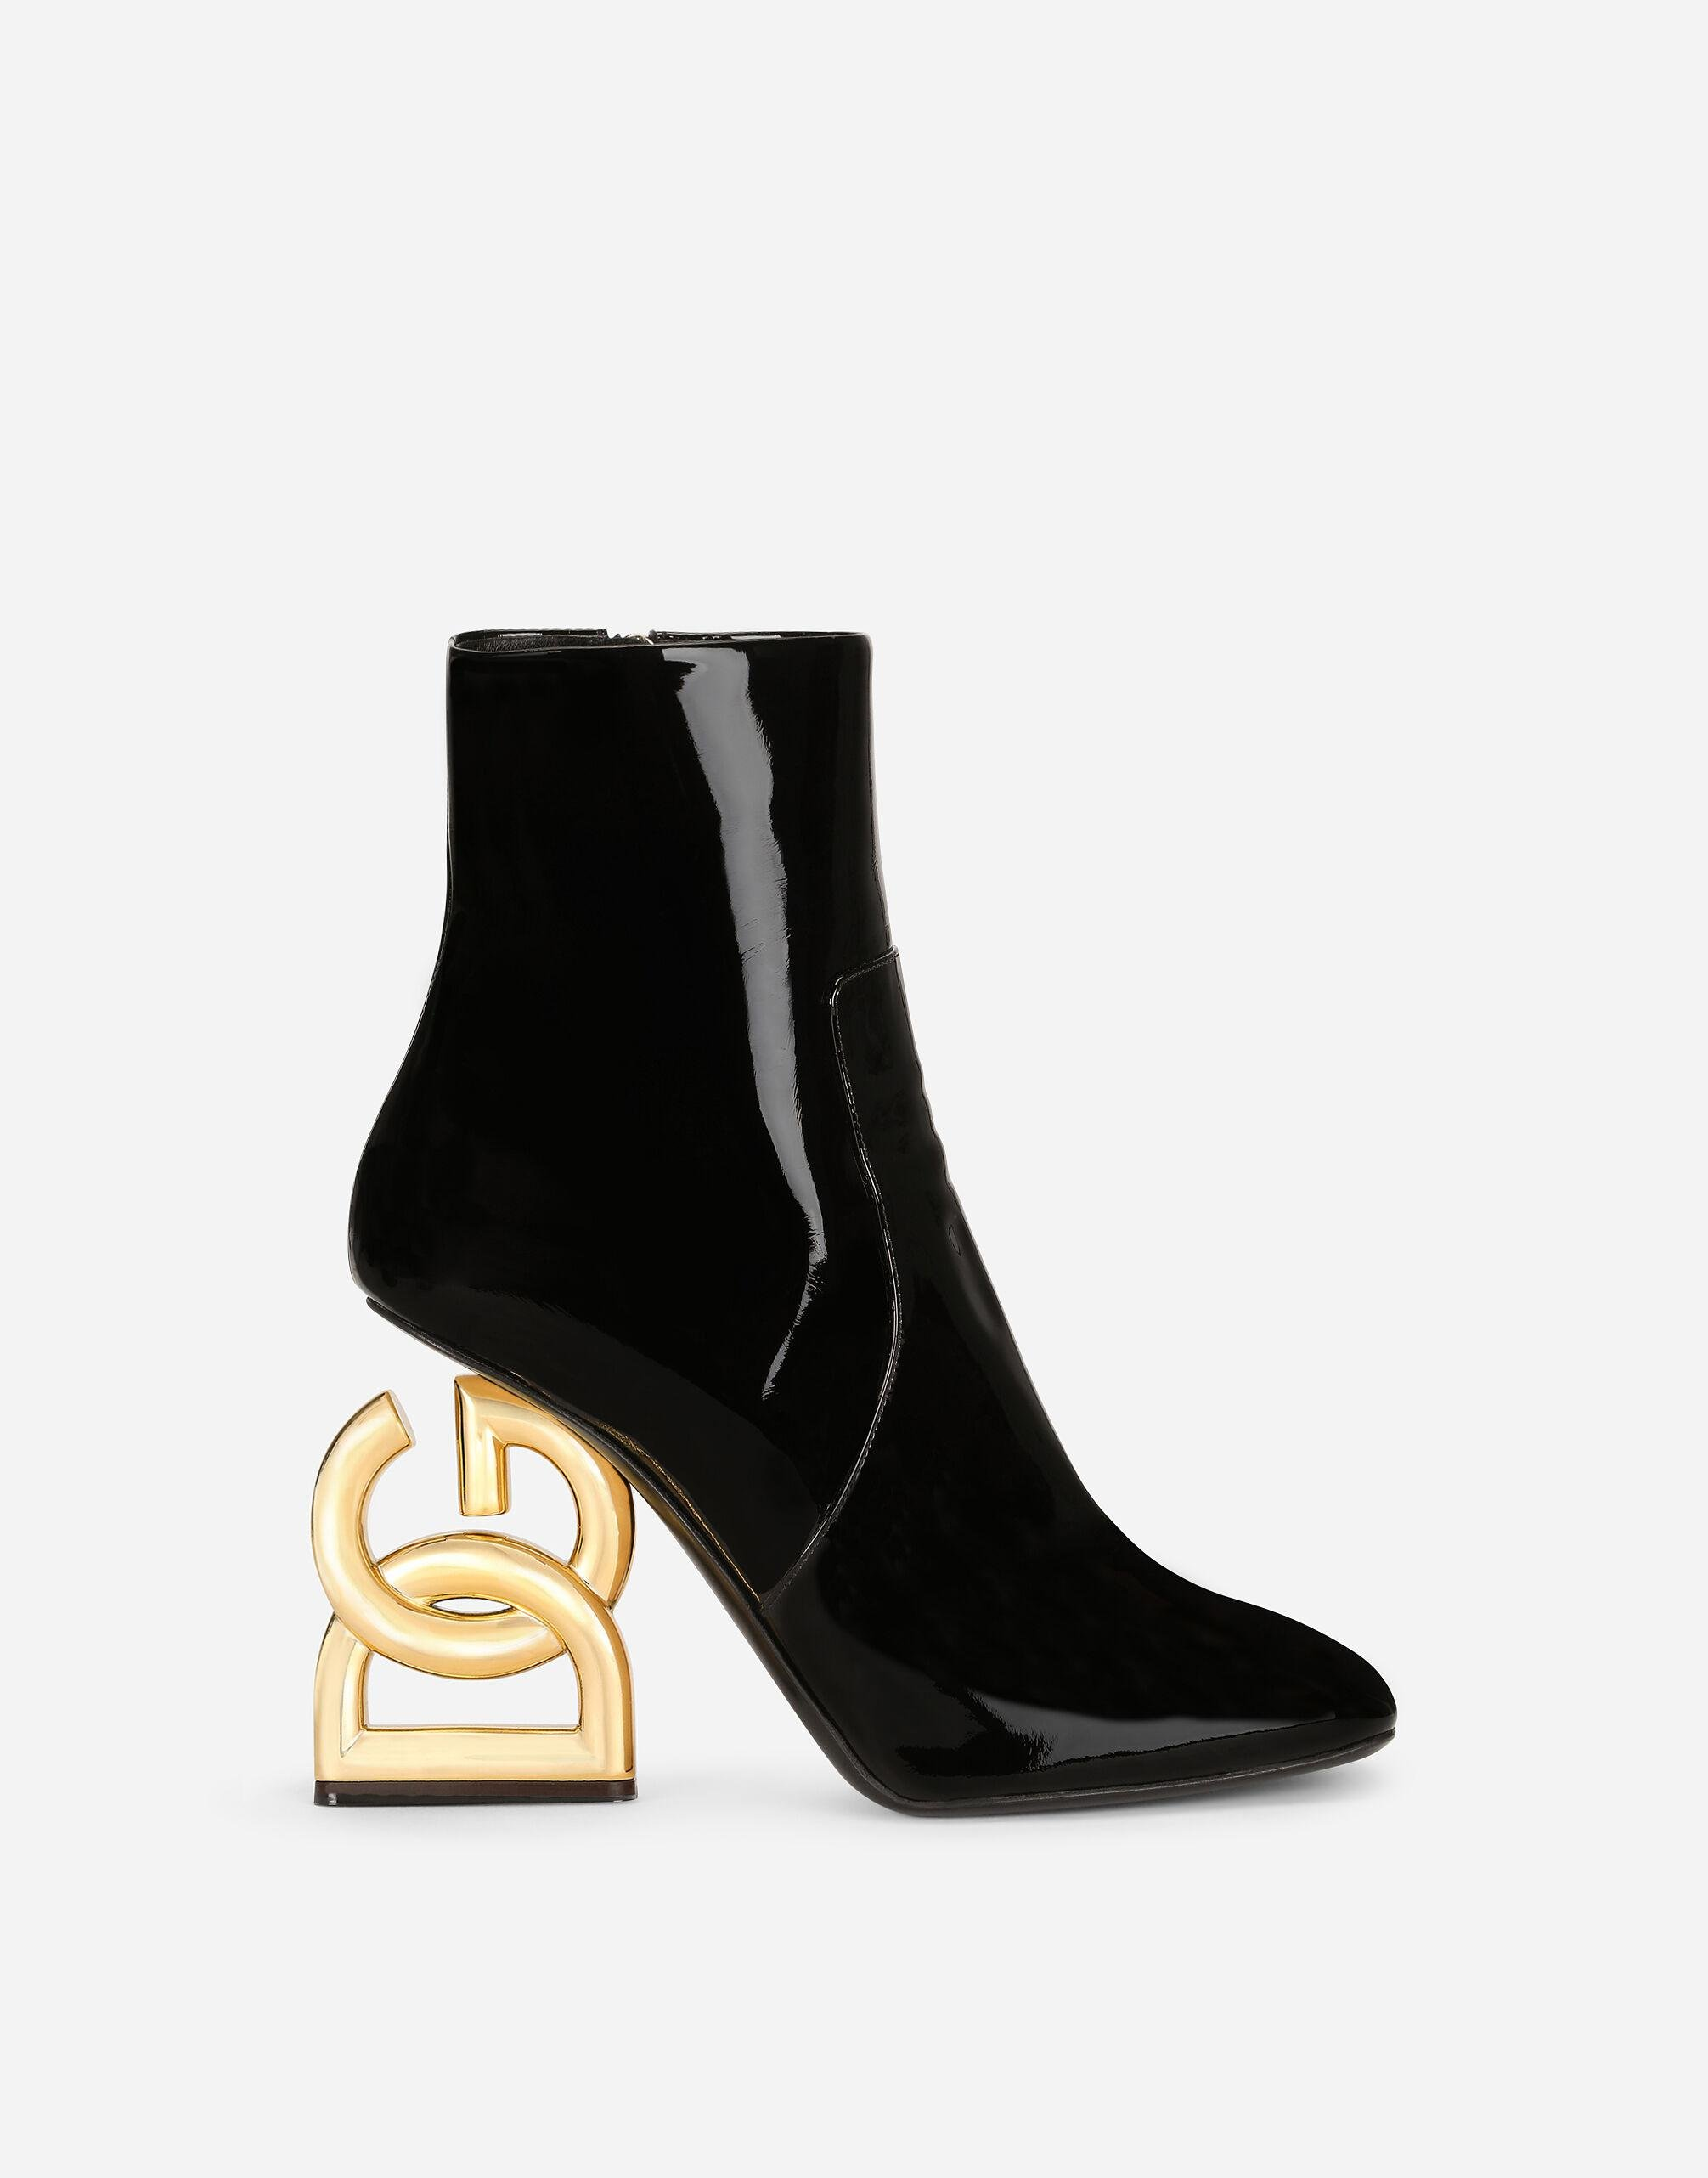 Patent leather ankle boots with DG Pop heel